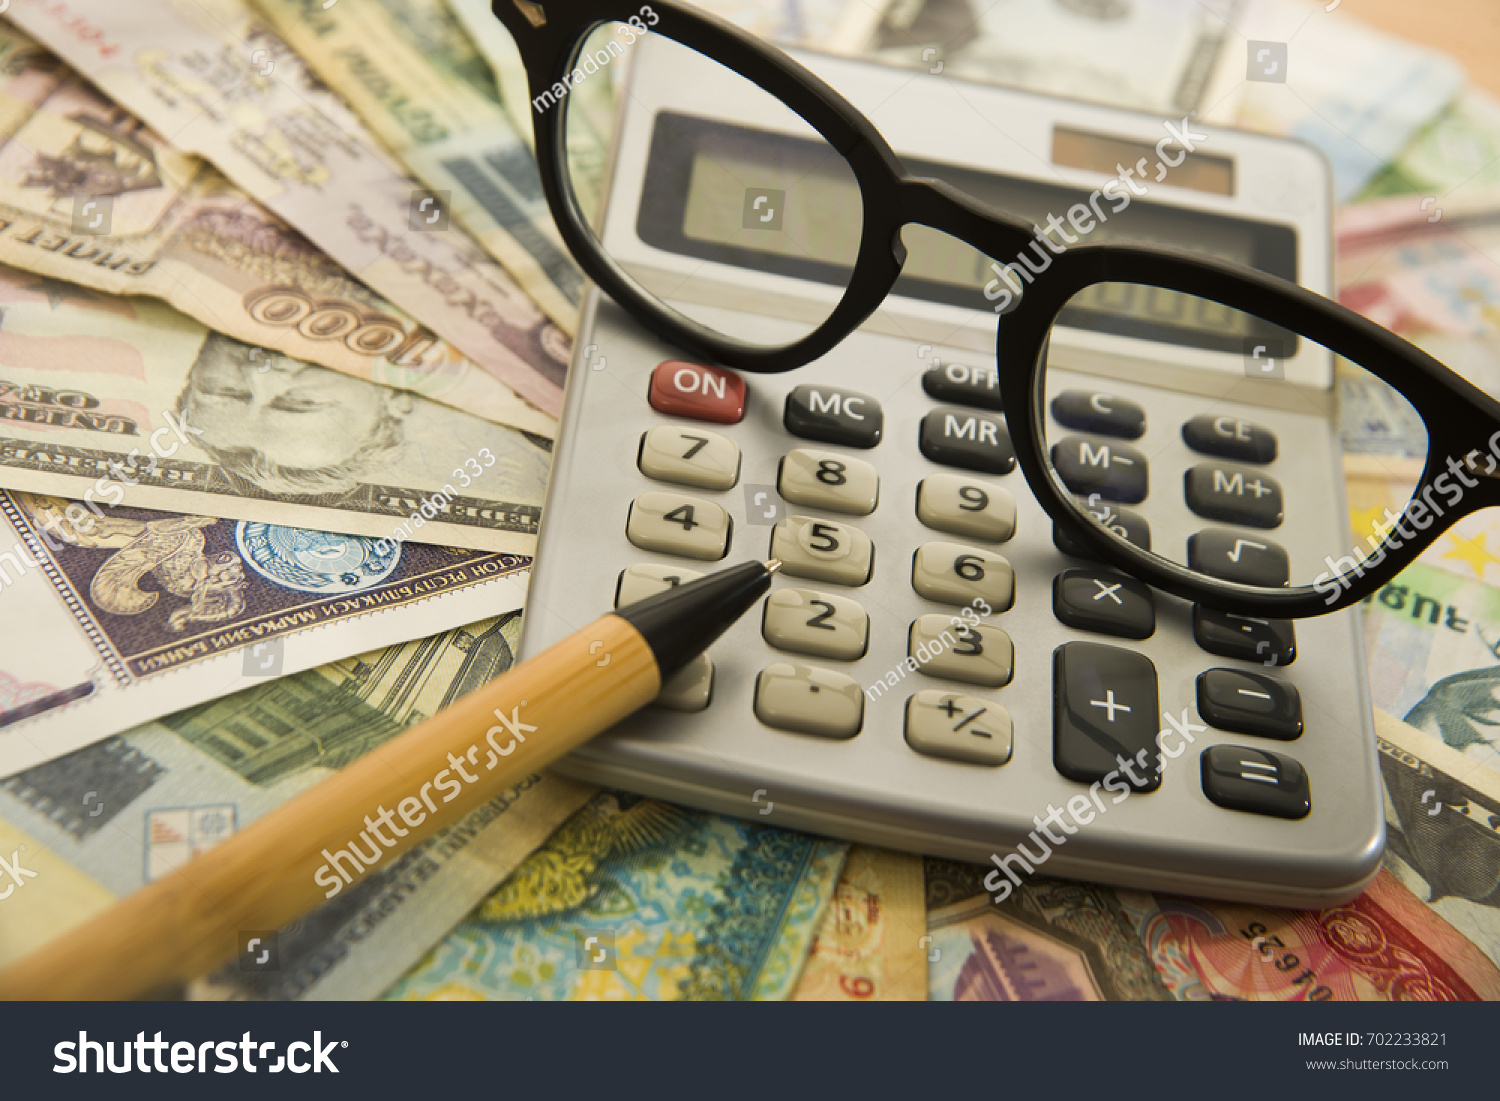 Calculating numbers income tax return glasses stock photo (edit.